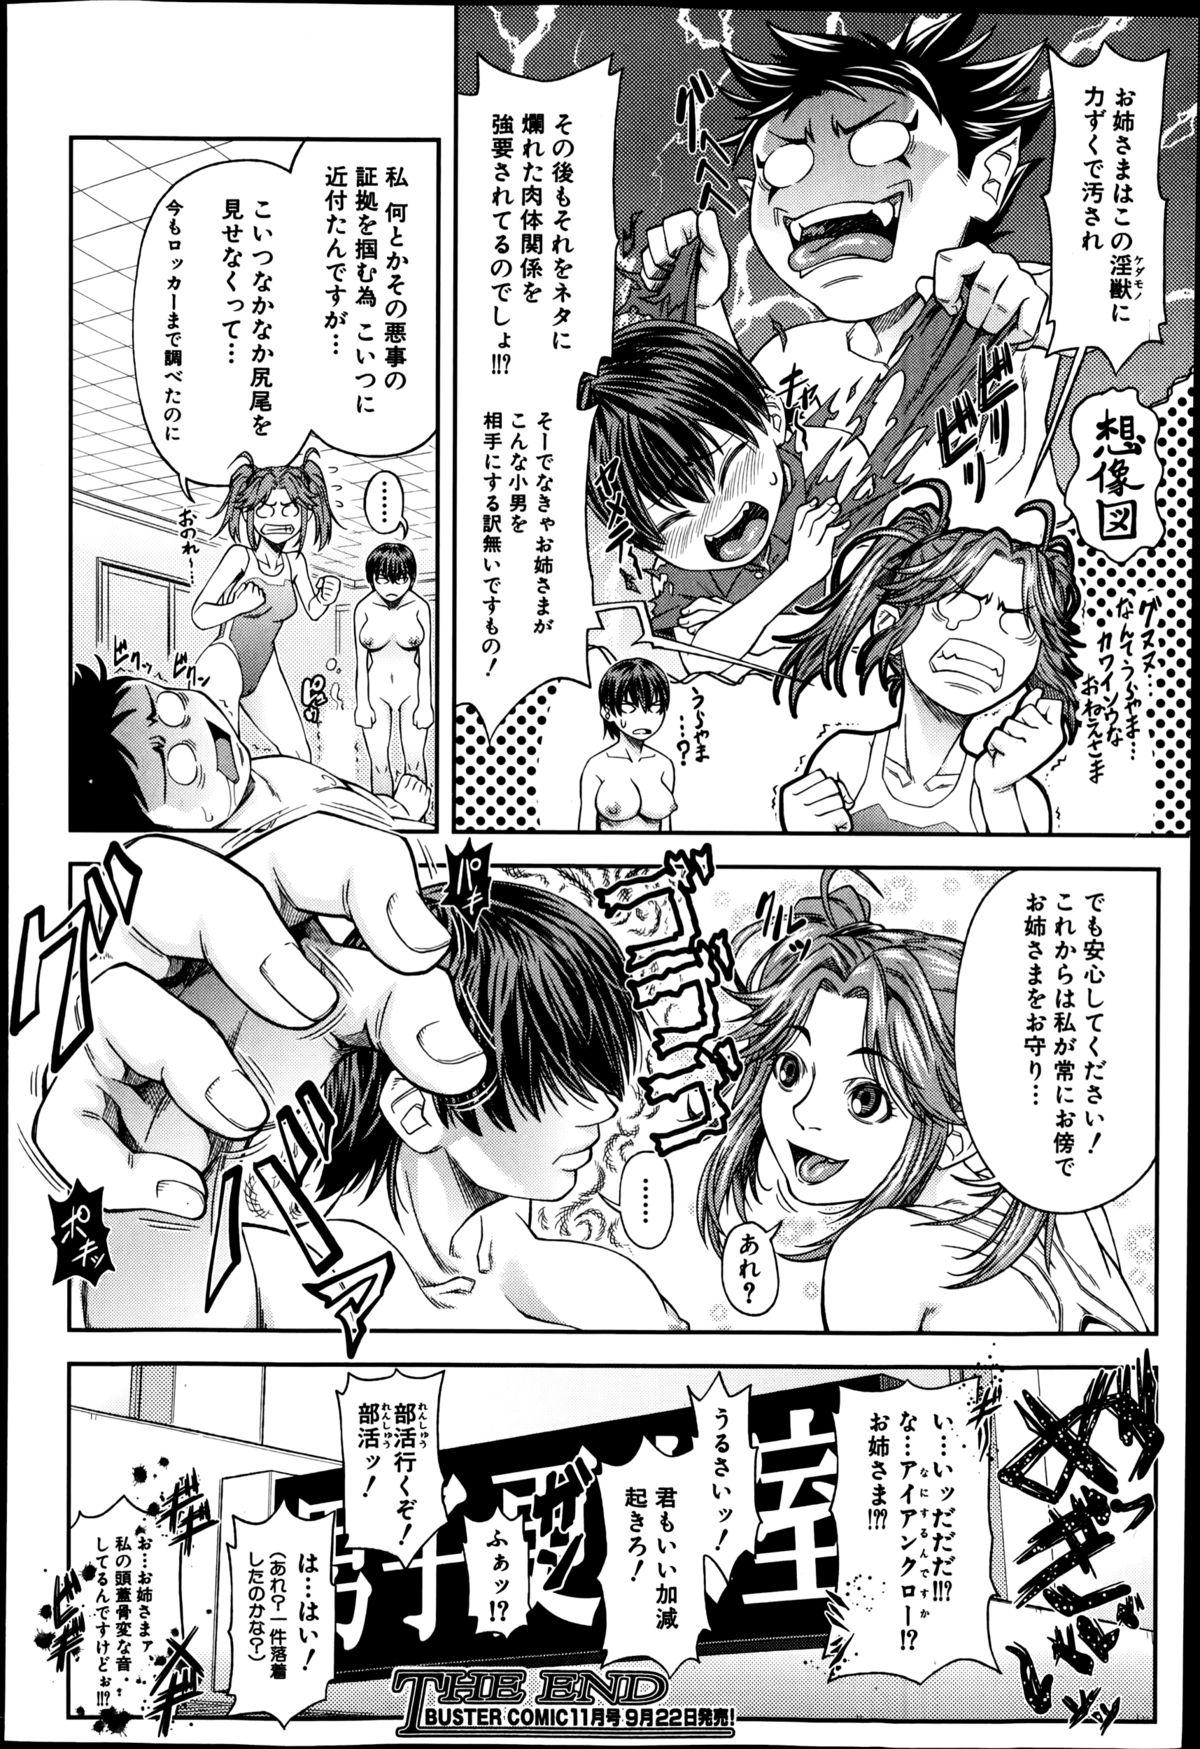 BUSTER COMIC 2014-09 101